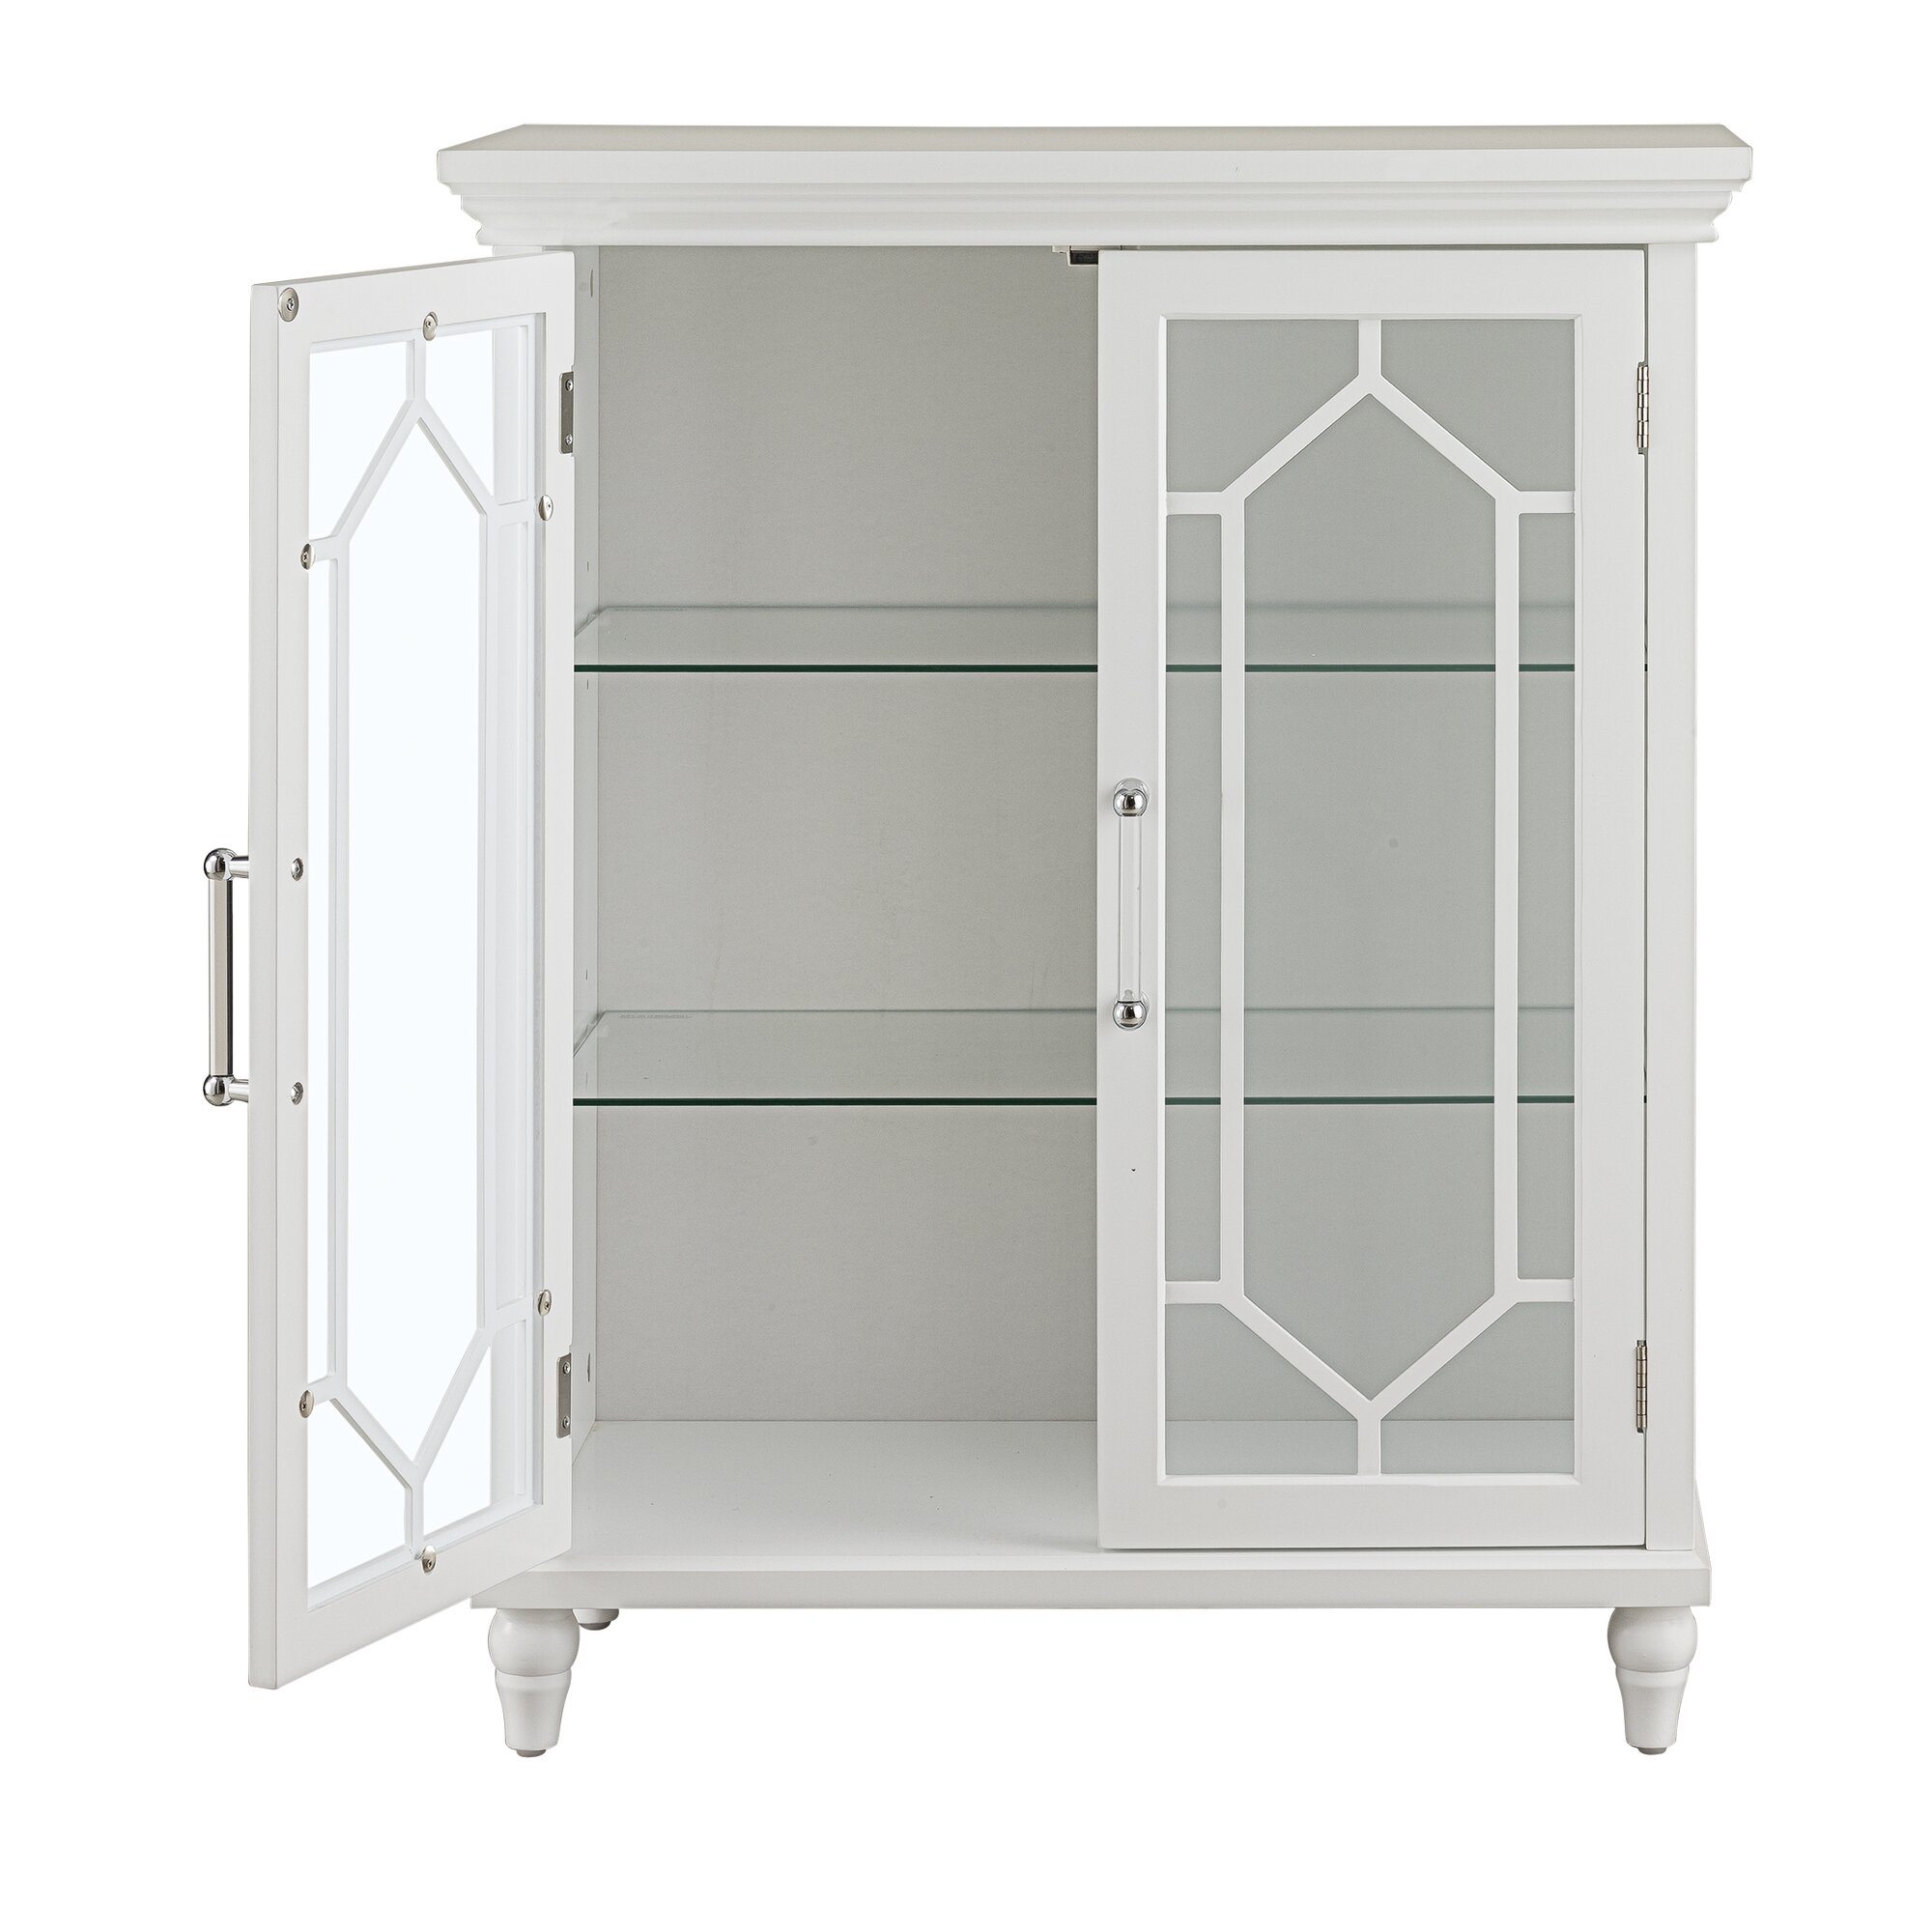 Elegant home fashions toulouse 2 door floor cabinet reviews wayfair - Cabinet d audit toulouse ...